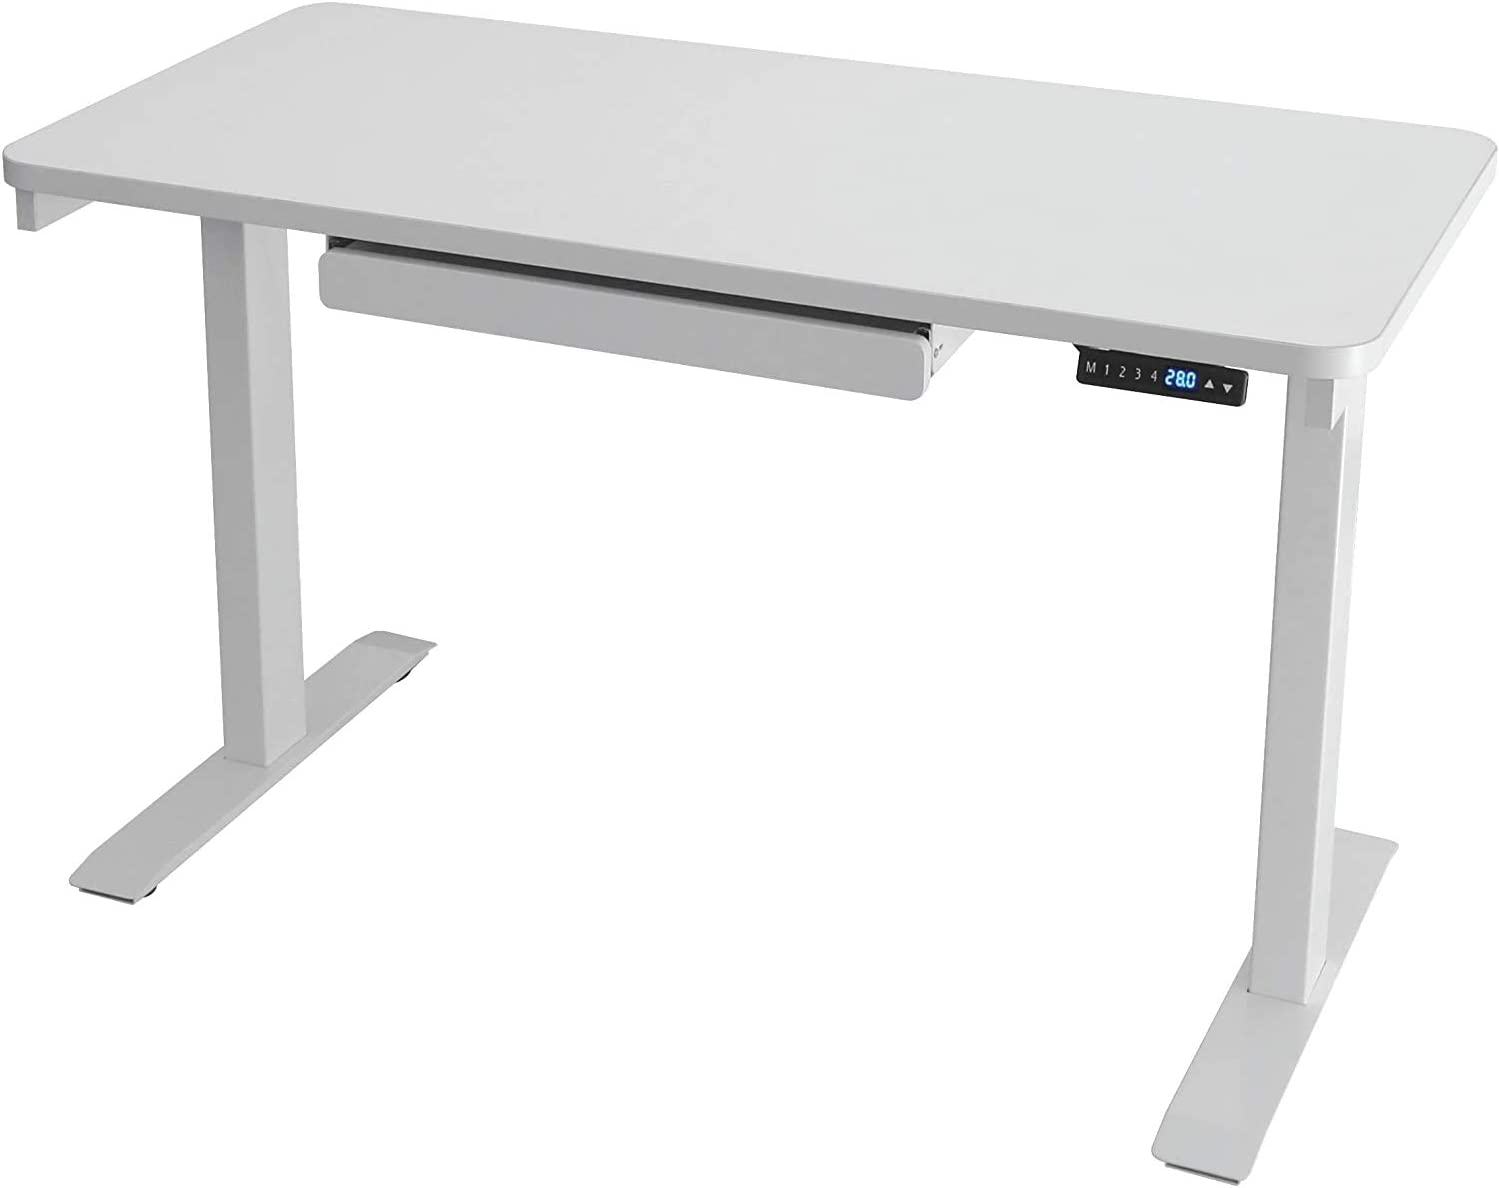 MotionWise 24x48 inch Desk with Drawer 28